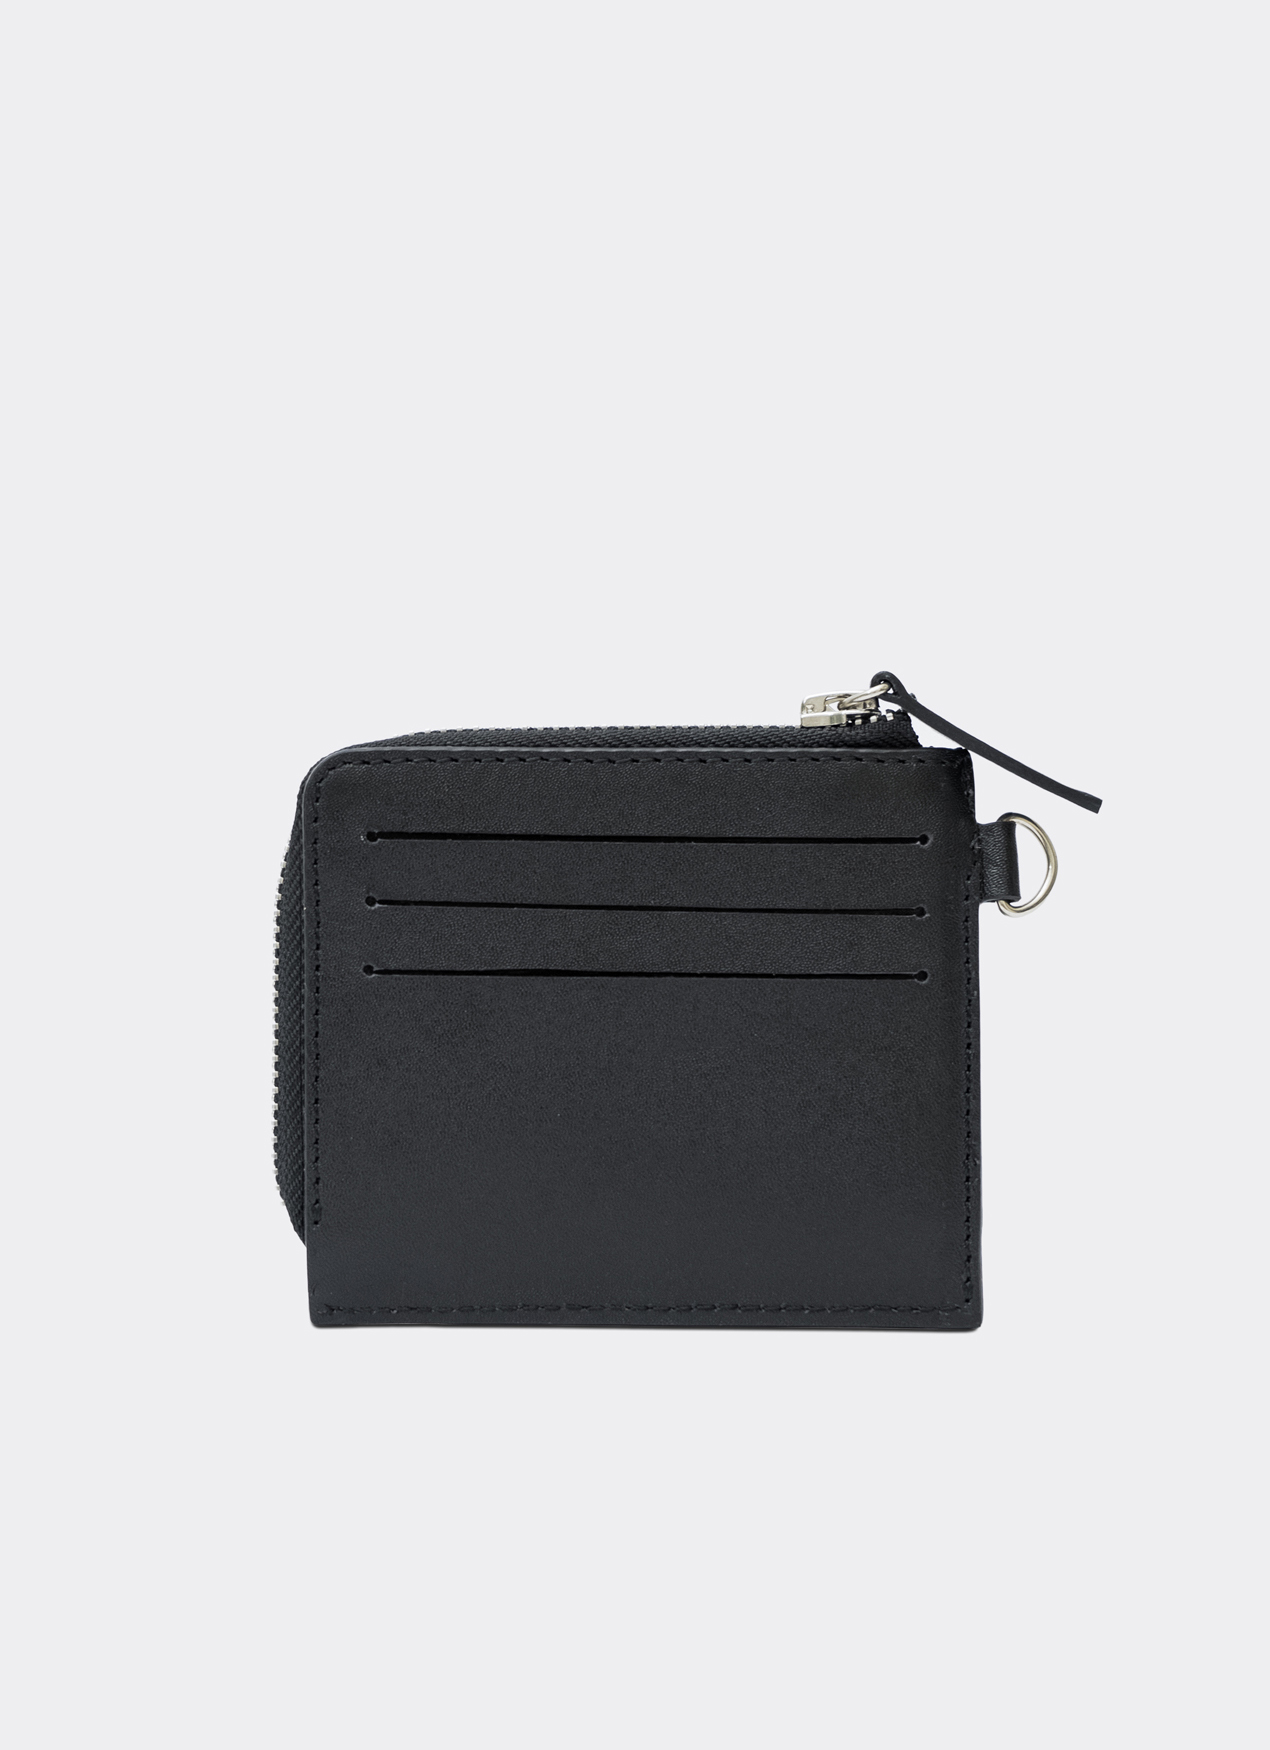 Aesthetic Pleasure Gauss Lanyard Card Wallet Black